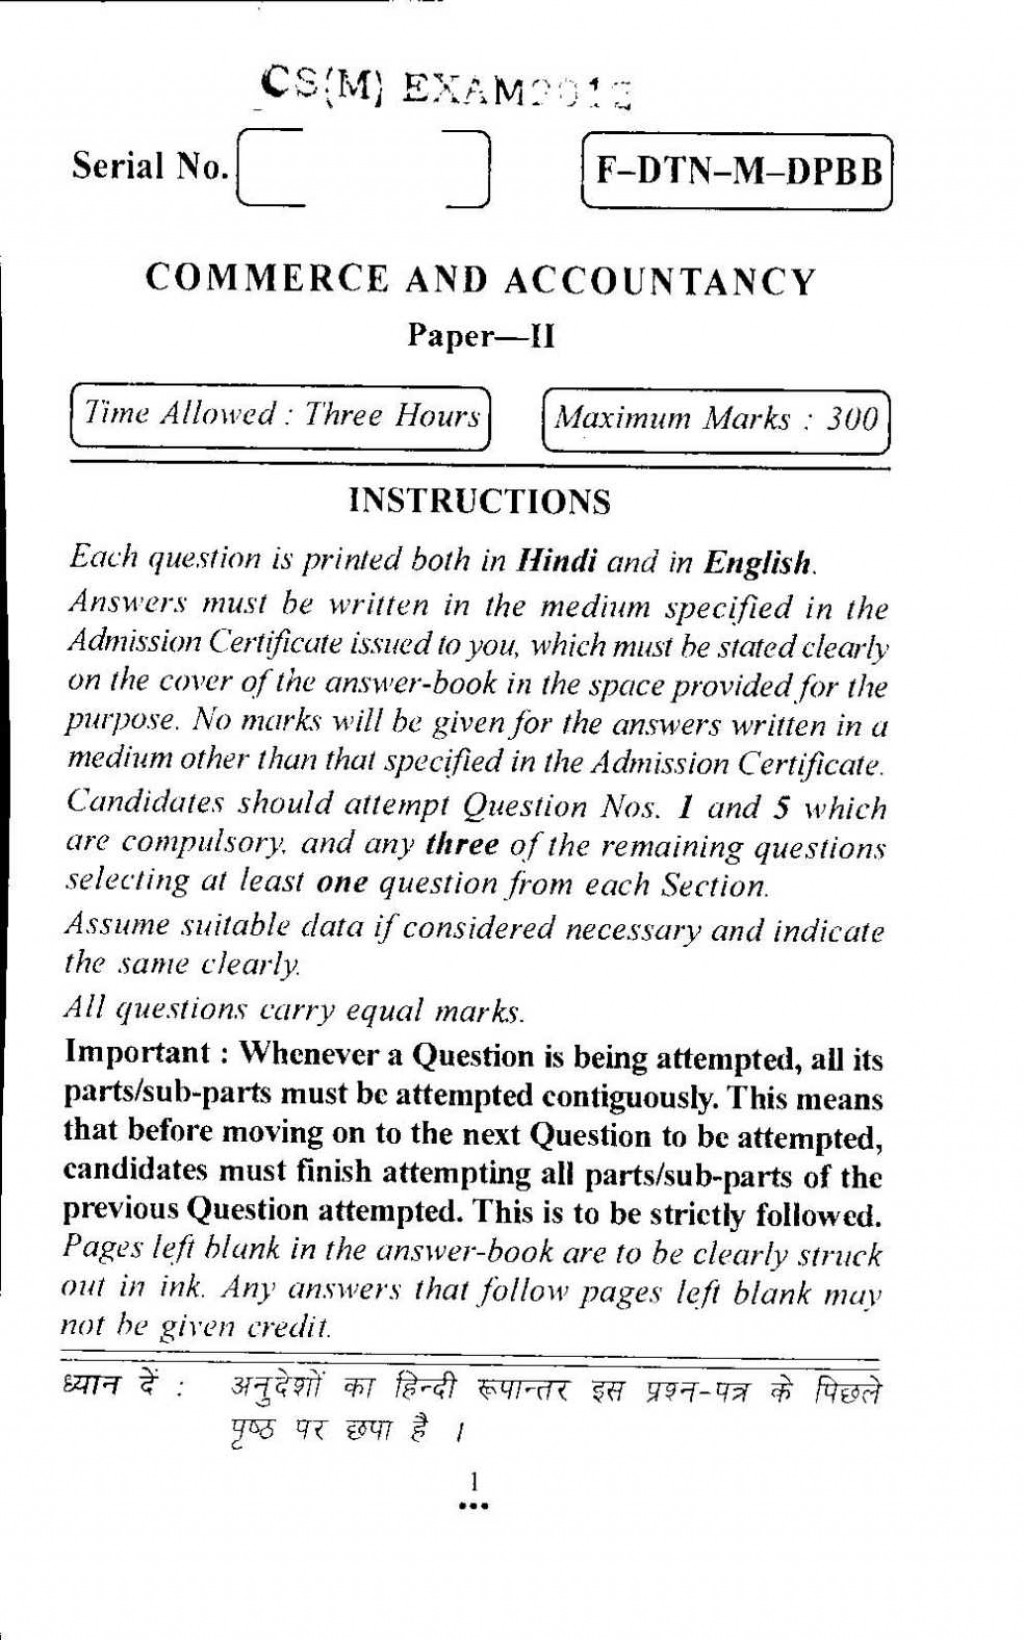 011 Civil Services Examination Commerce And Accountancy Paper Ii Previous Years Que Essay Example Marvelous Racism Racial Issues Topics Hook Large